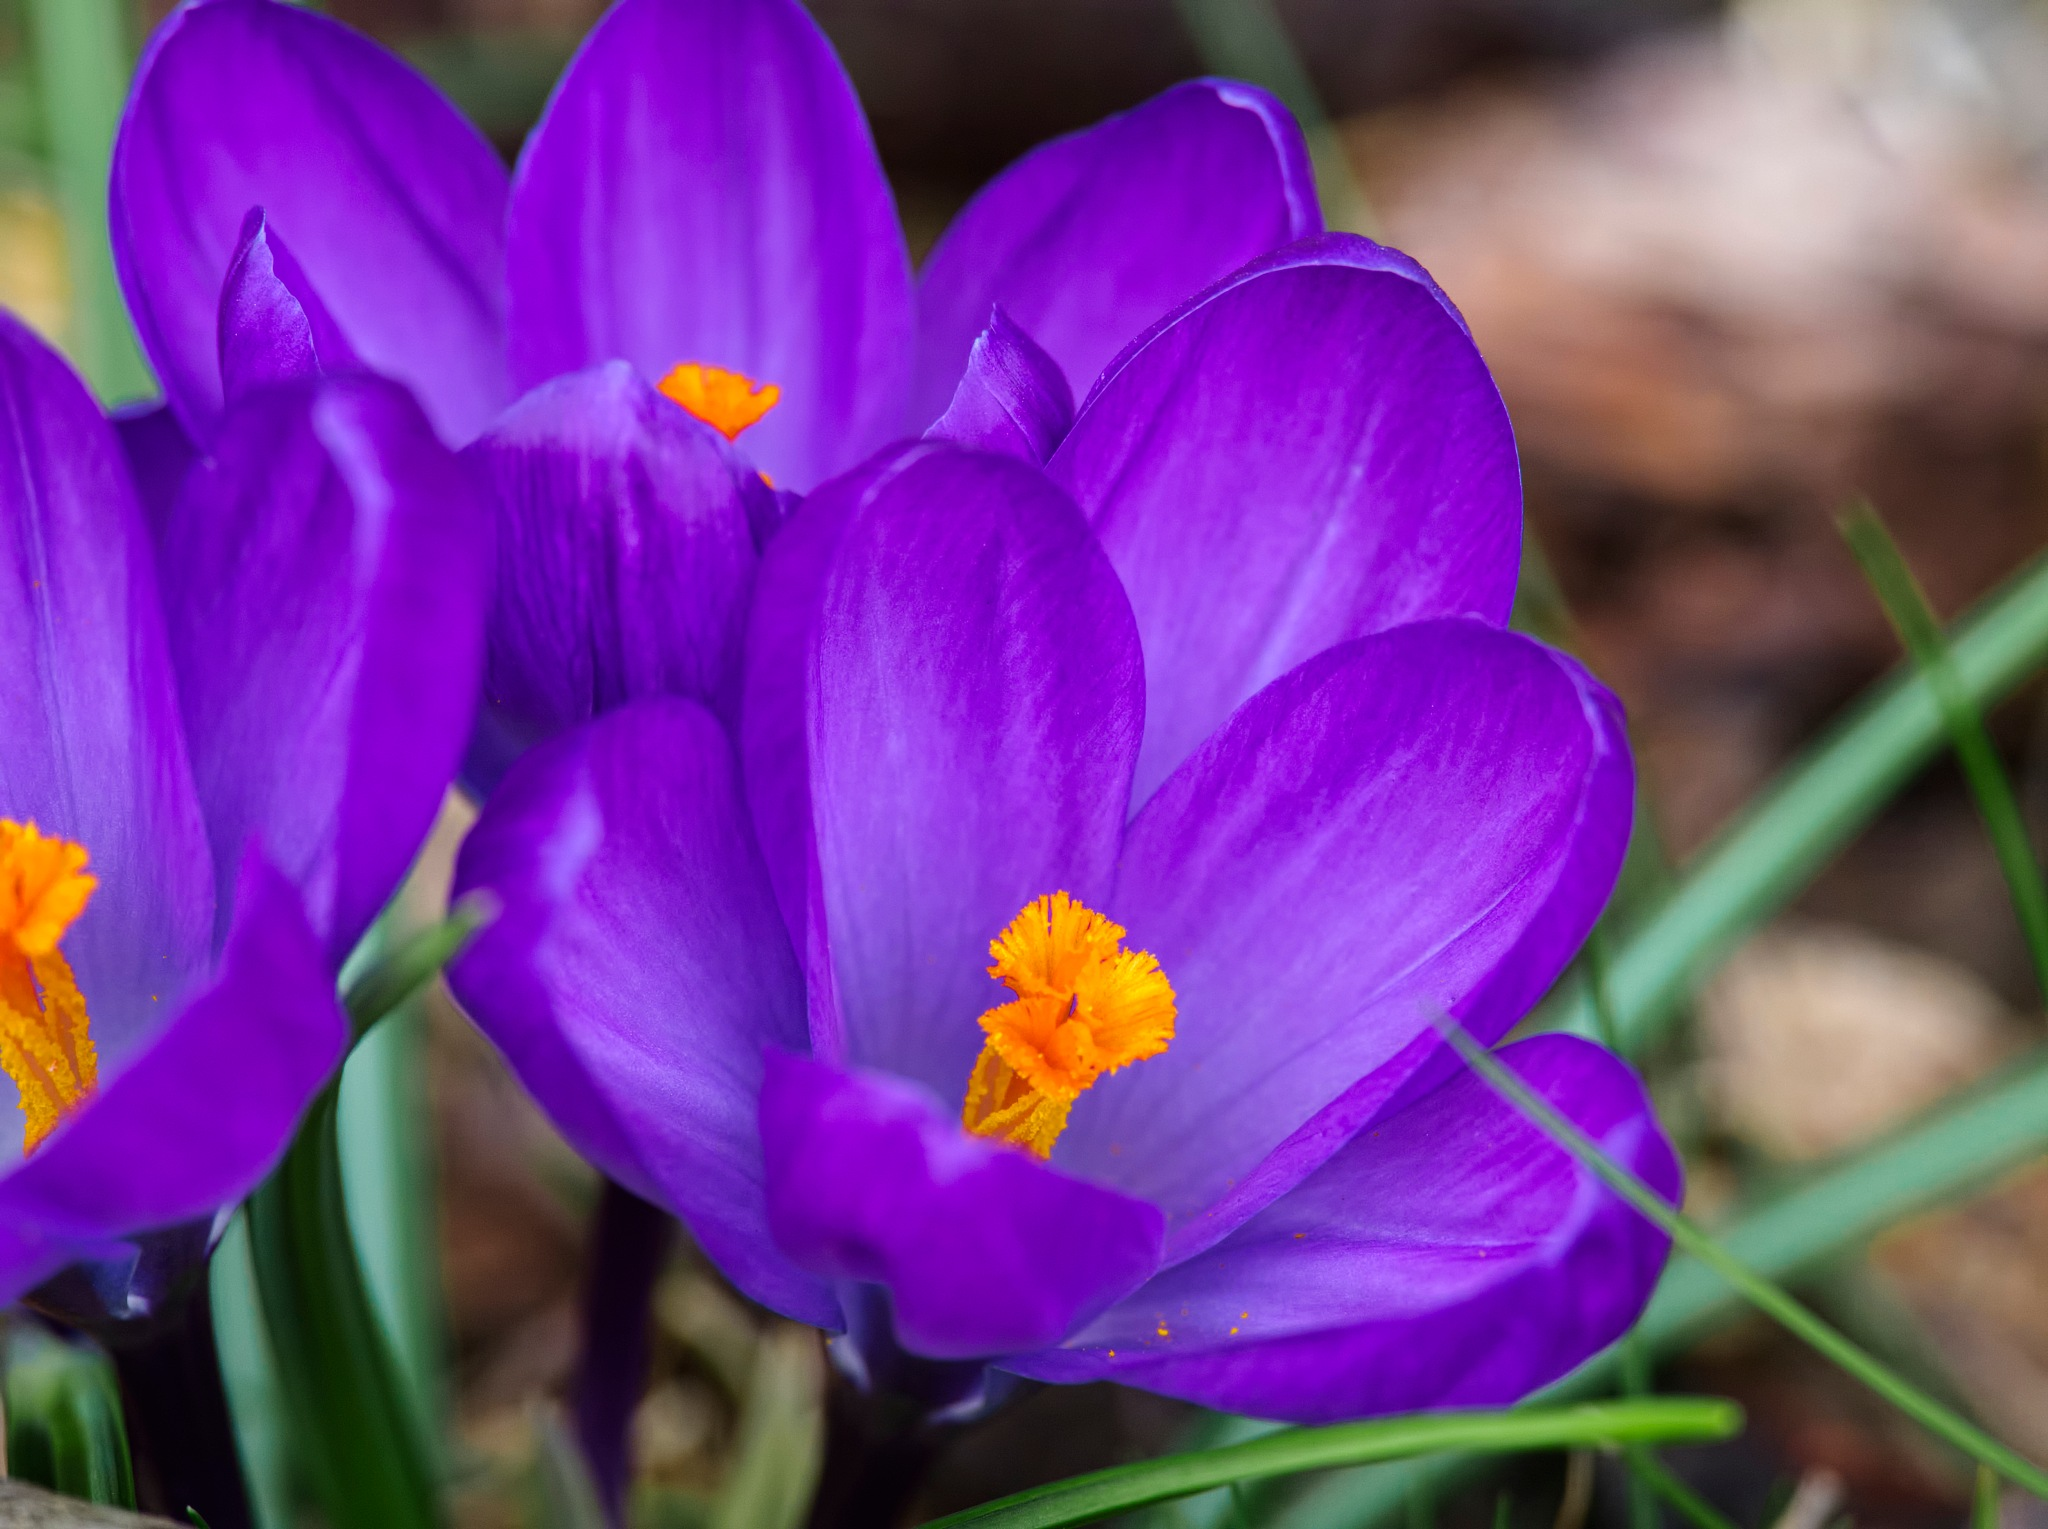 Spring flowers are up by Evan Spellman